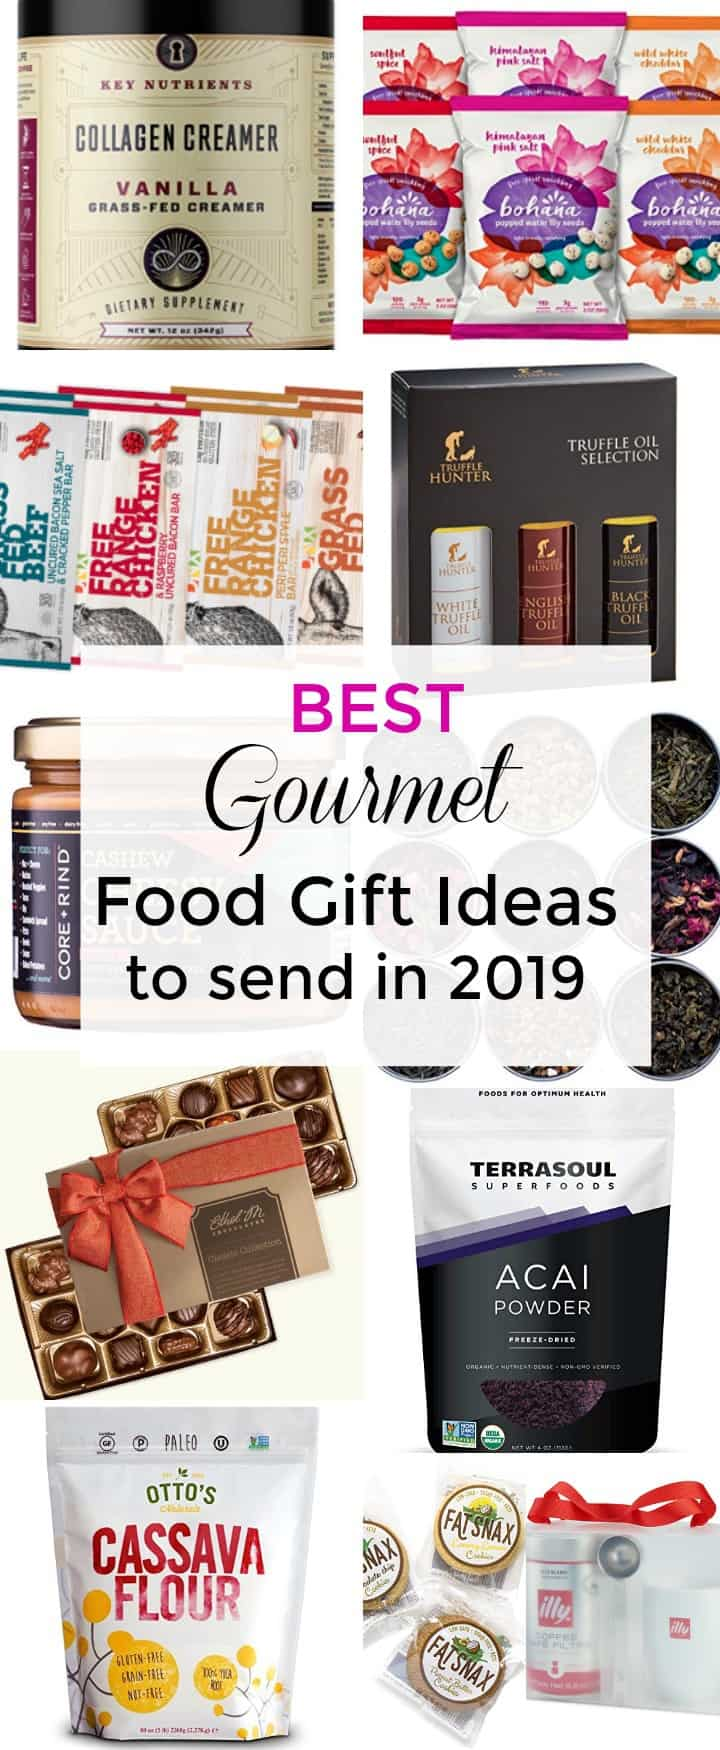 Best Gourmet Food Gifts for 2019